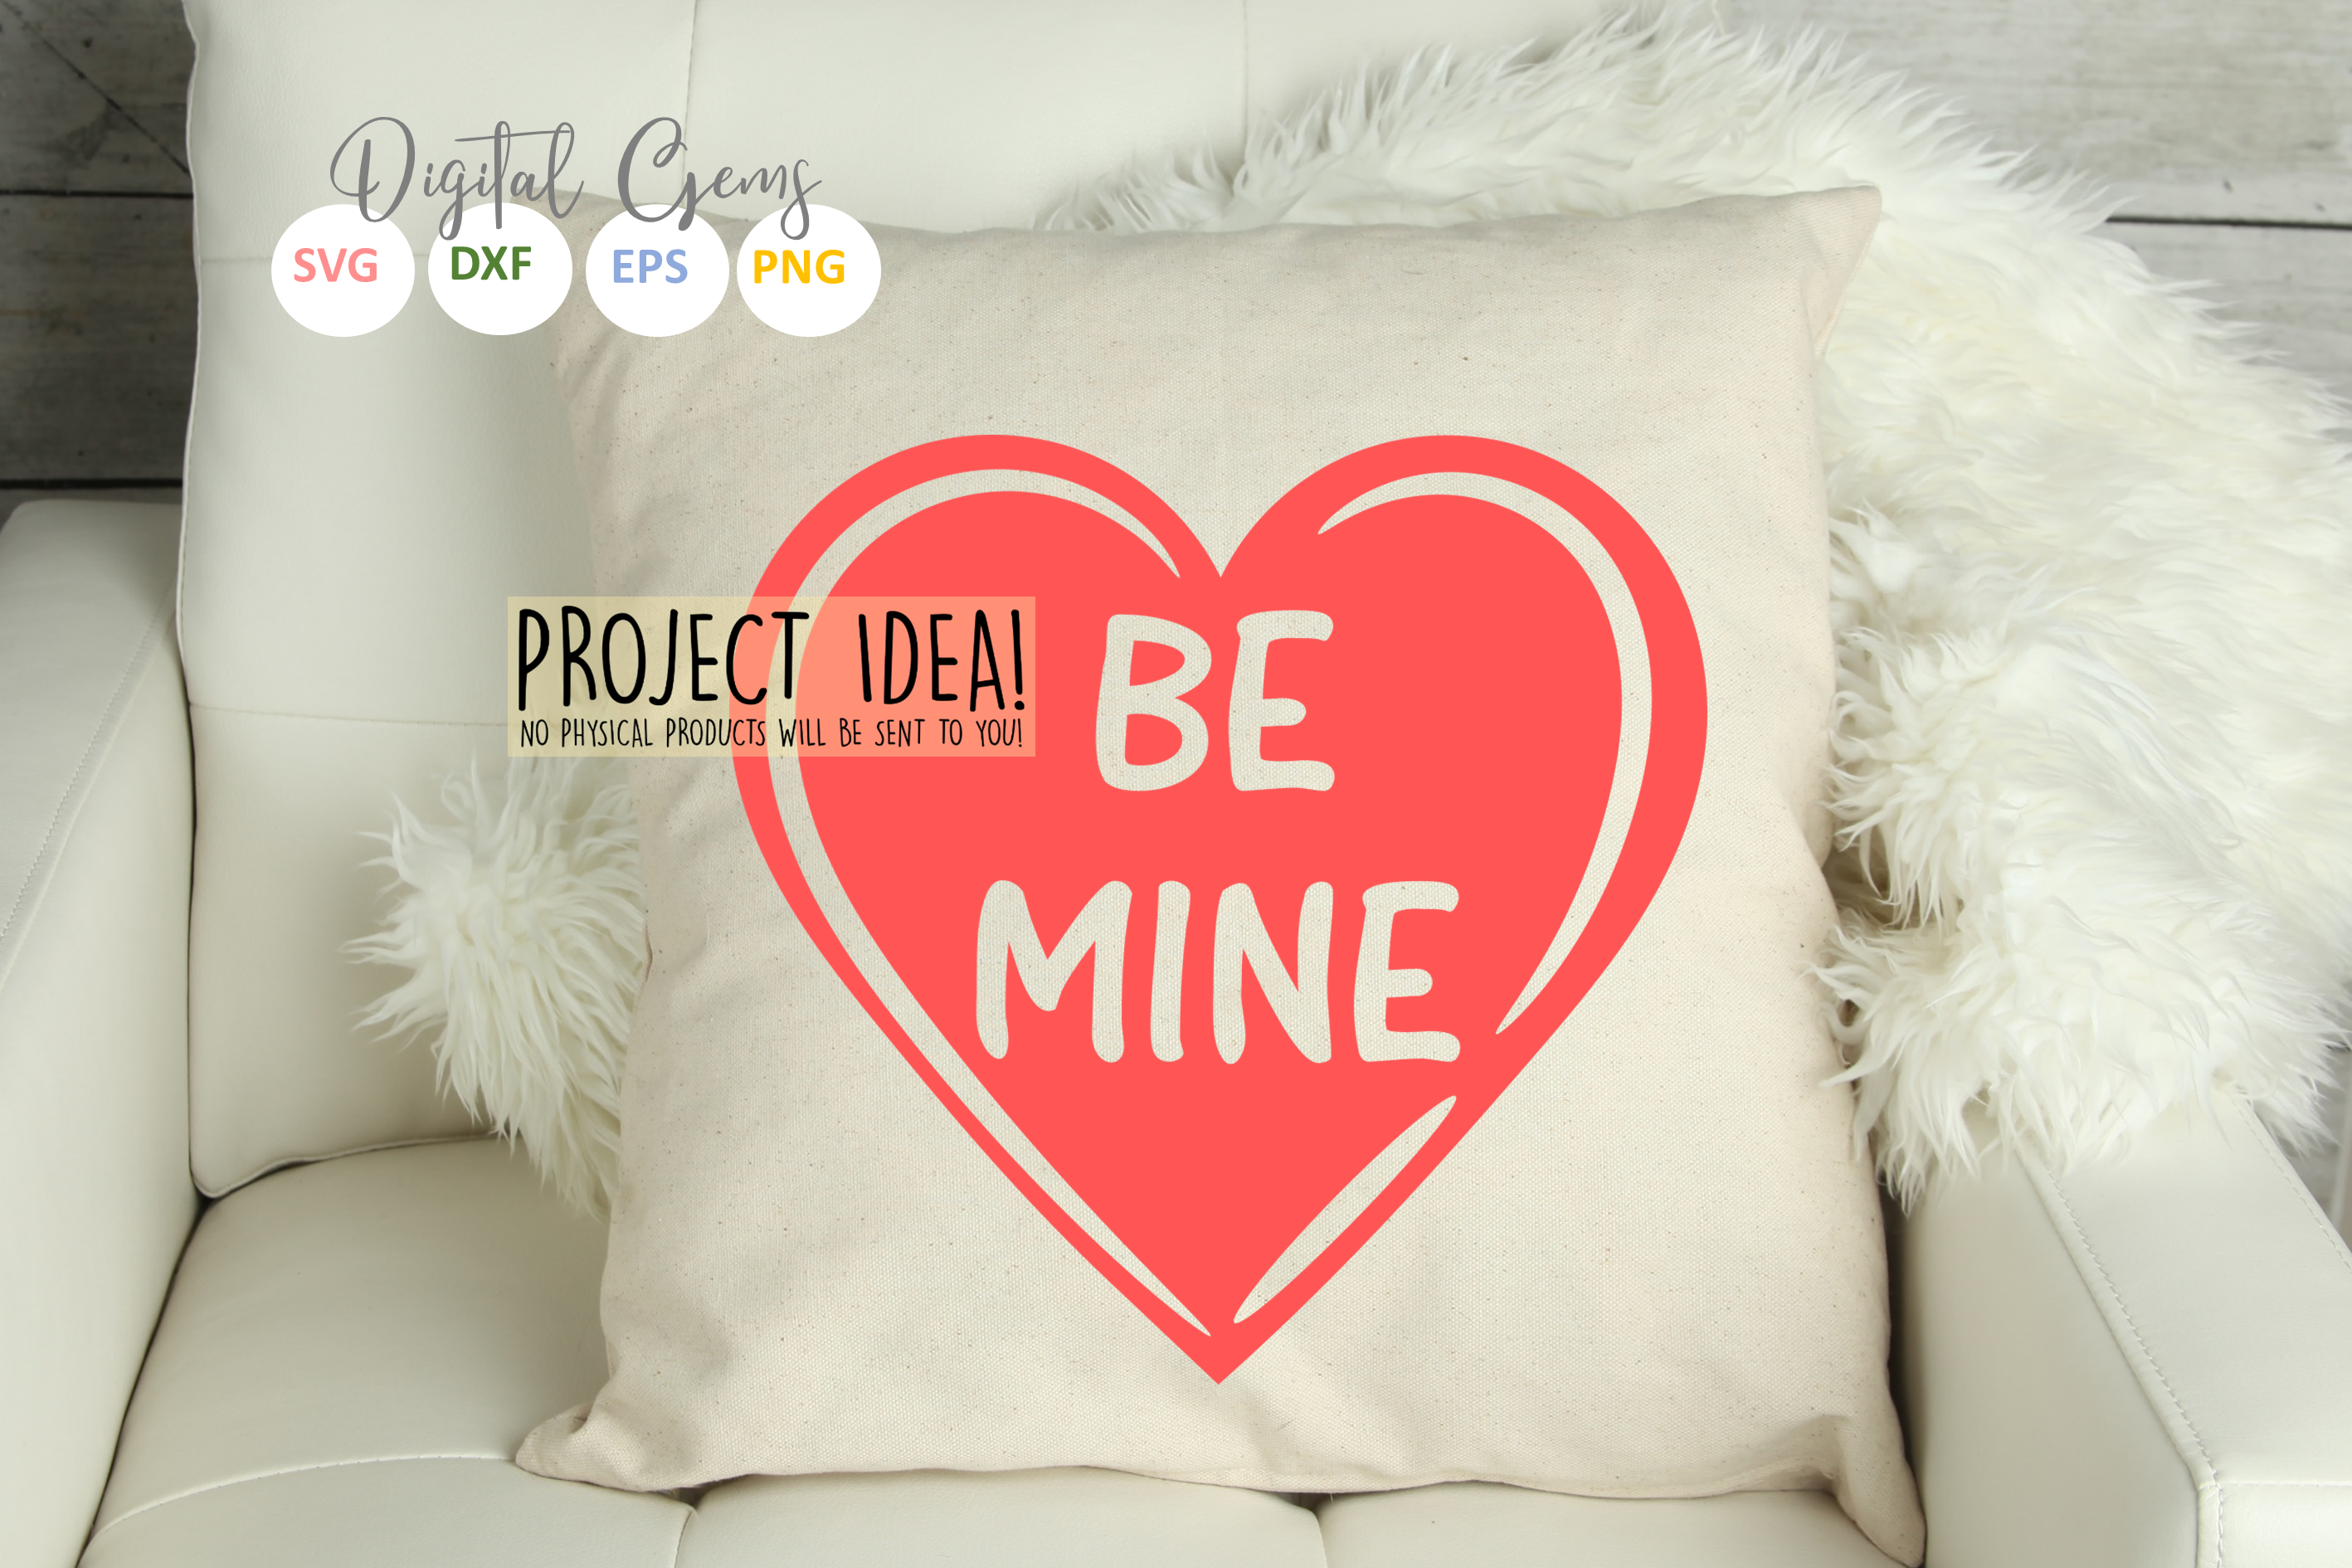 Be mine SVG / EPS / DXF / PNG Files example image 5